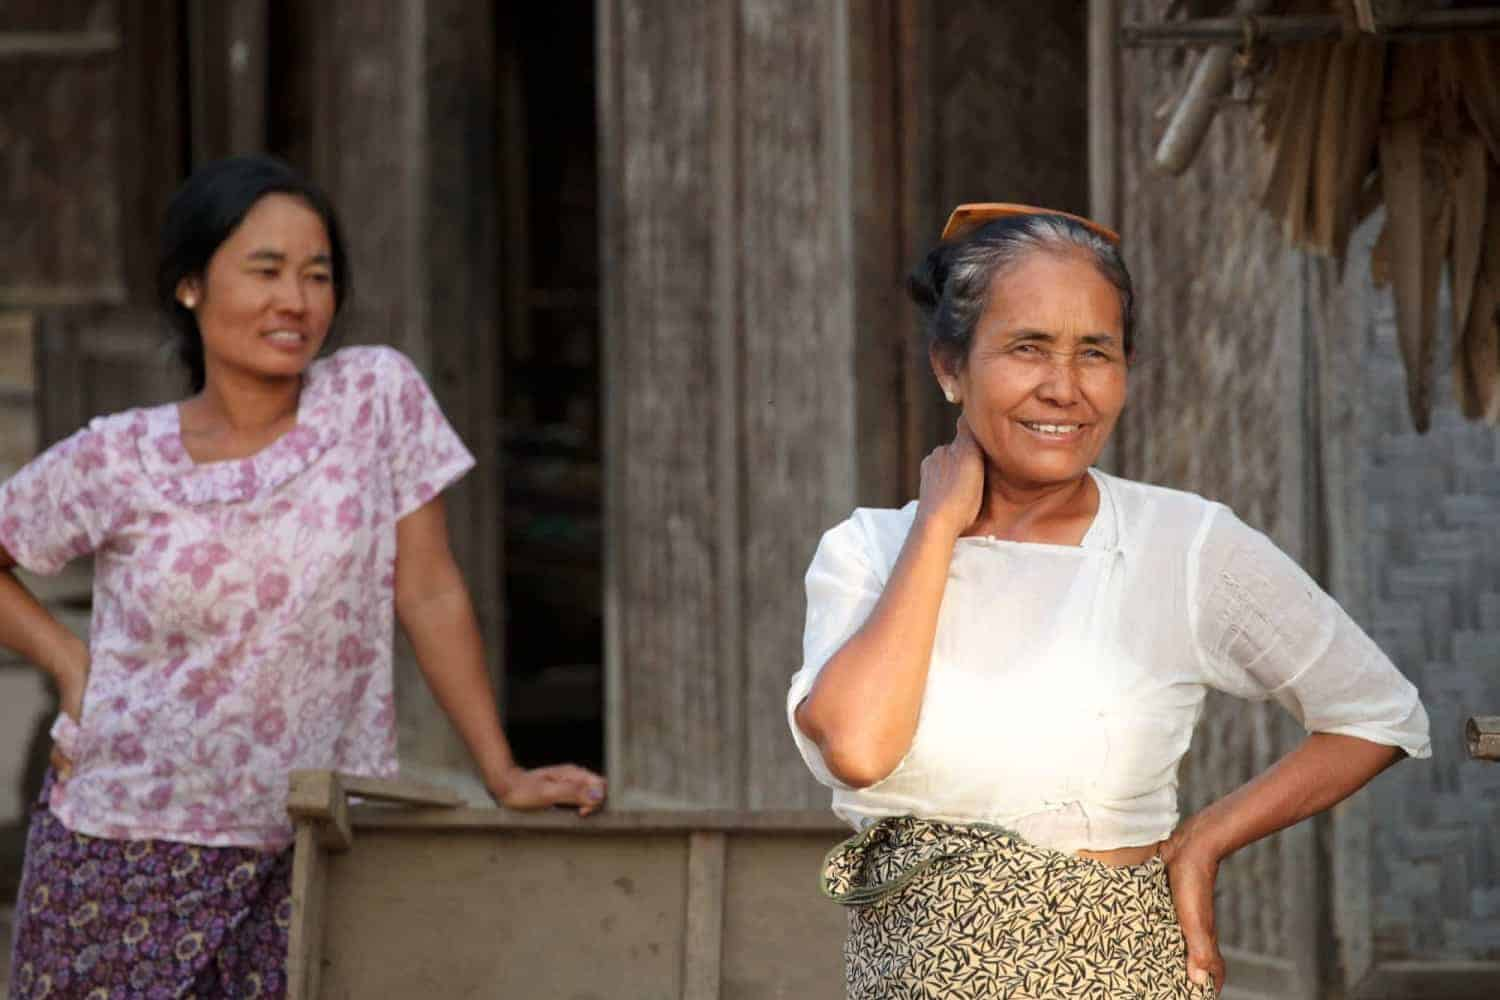 Are local people friendly in Myanmar